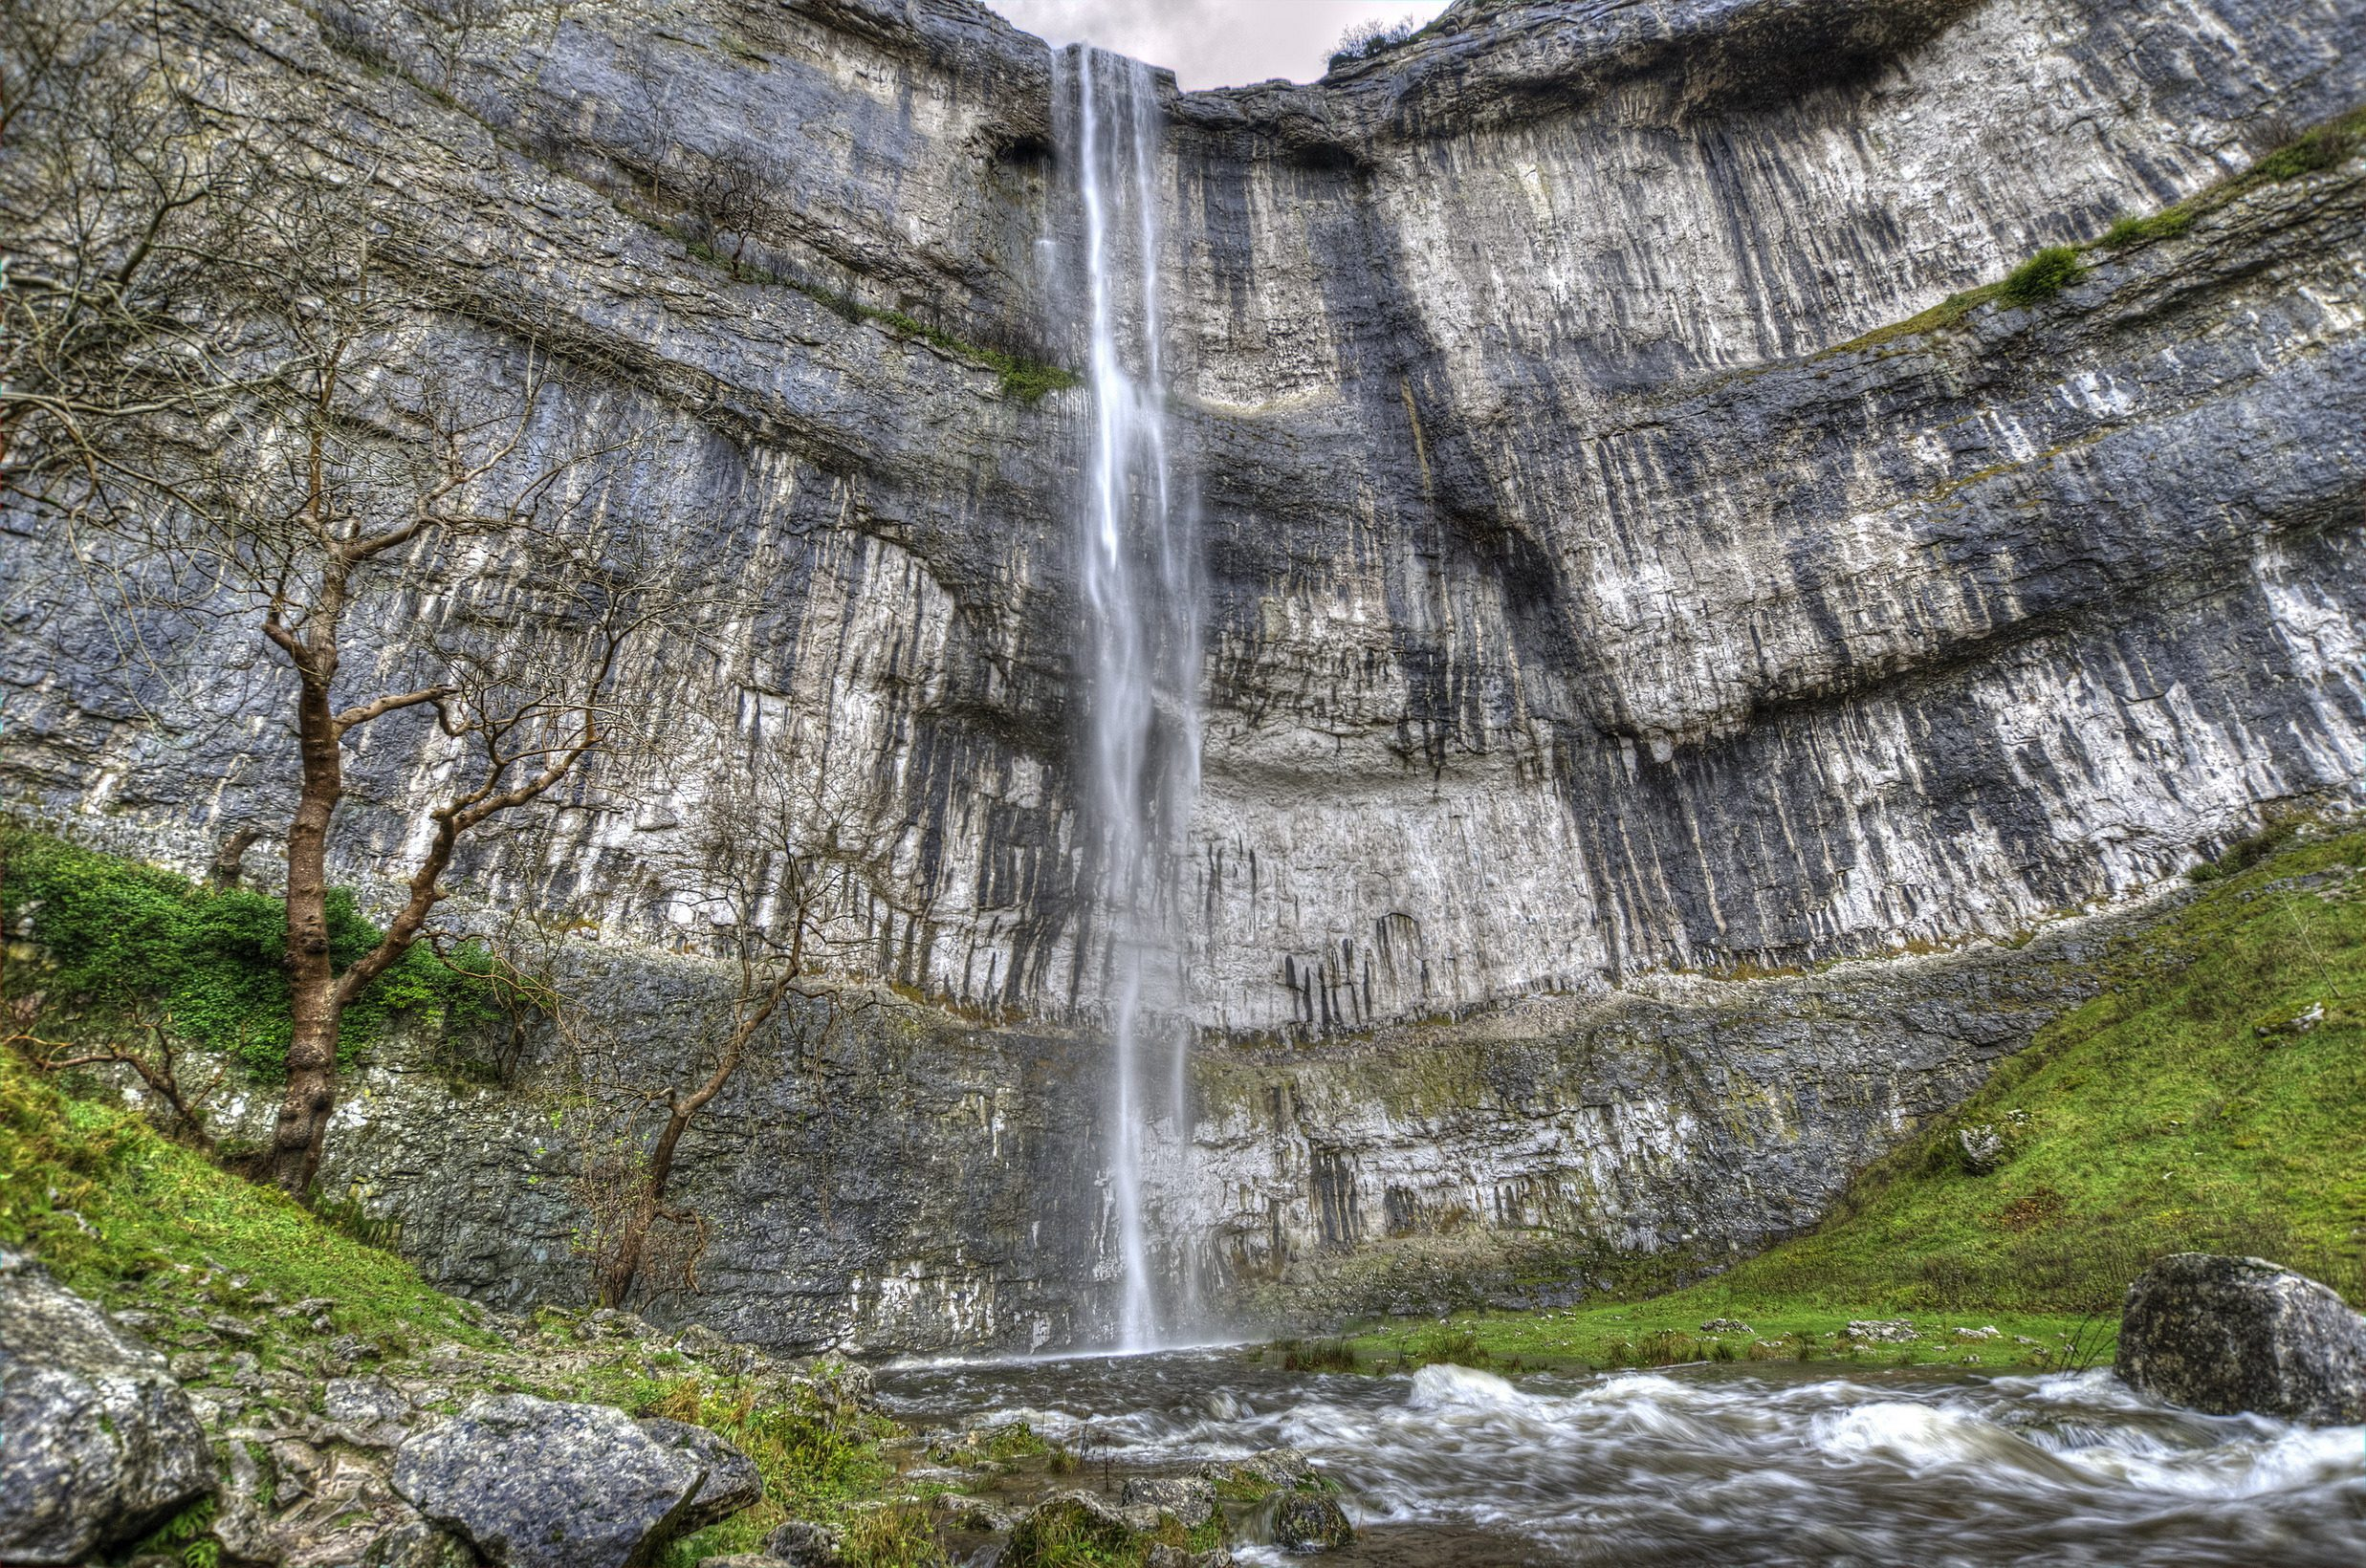 malham_cove_waterfall_03_resize